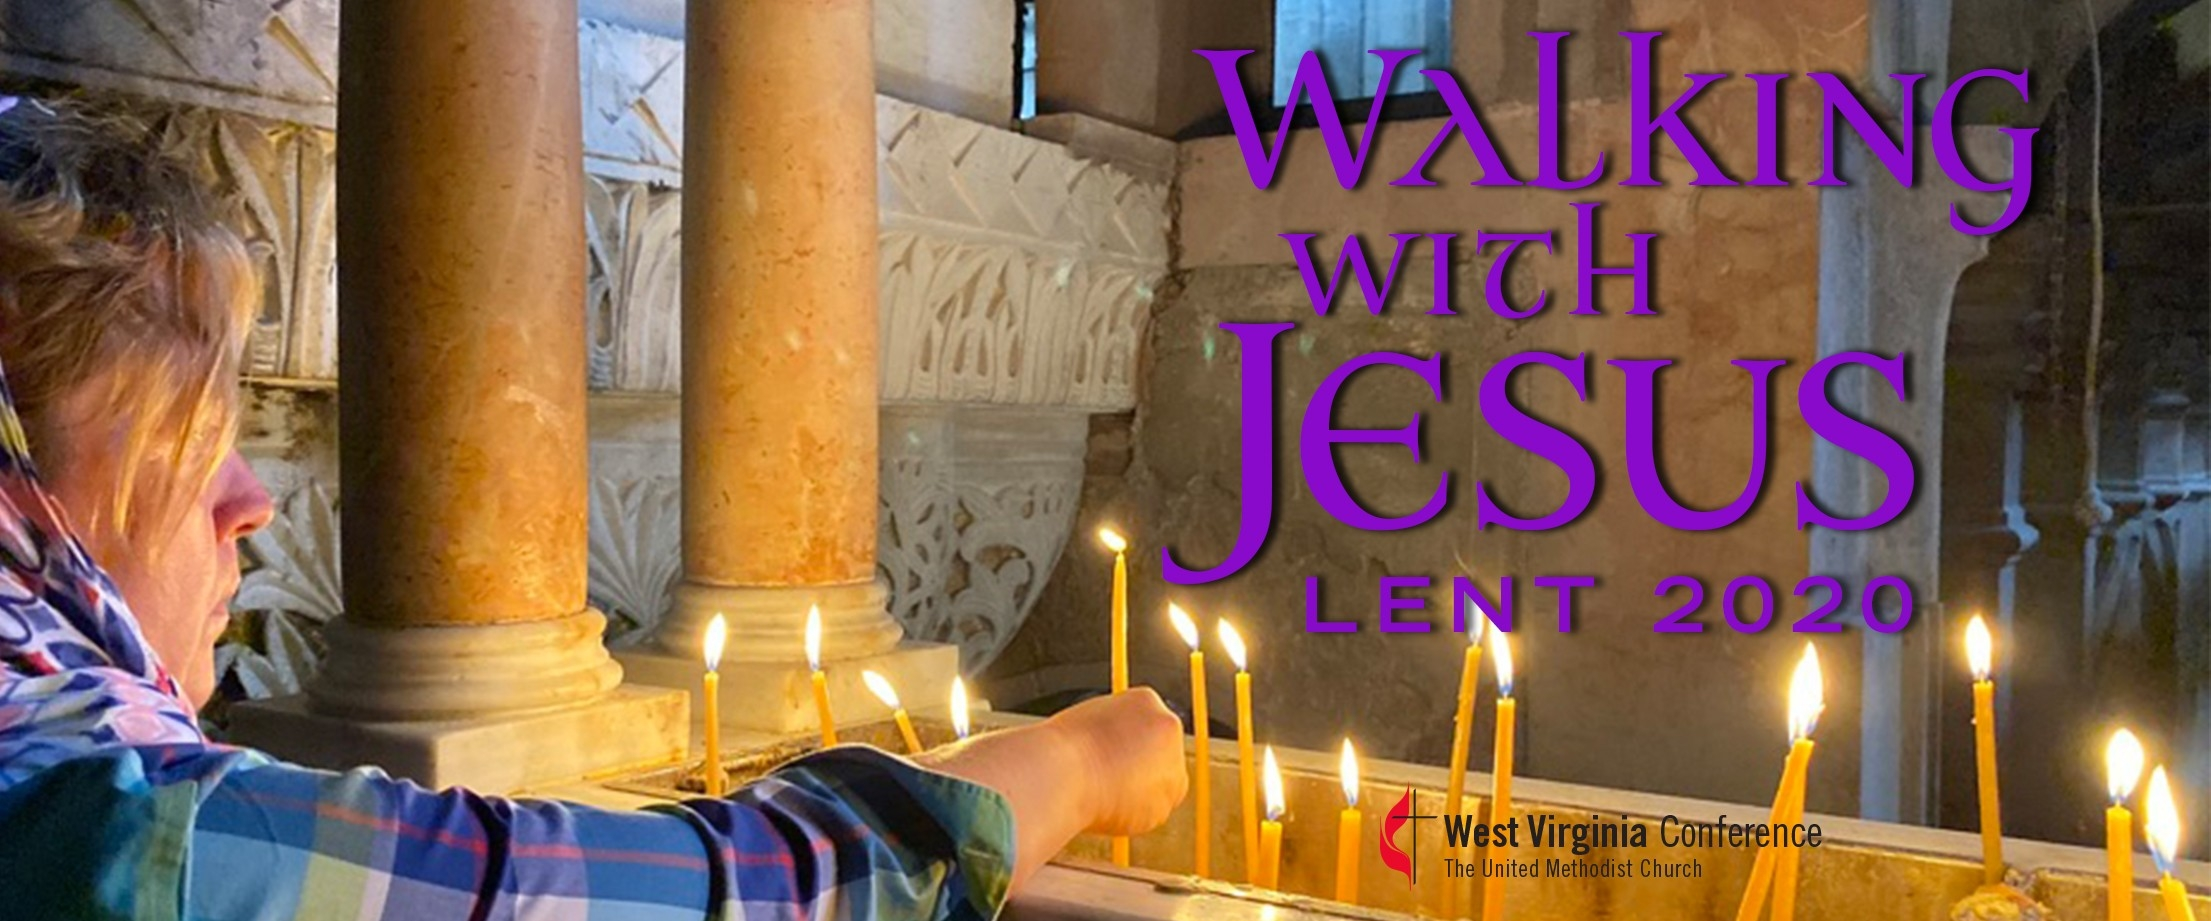 Walking With Jesus: Lent Week 3 | West Virginia Conference  Lectionary Readings 2020 United Methodist